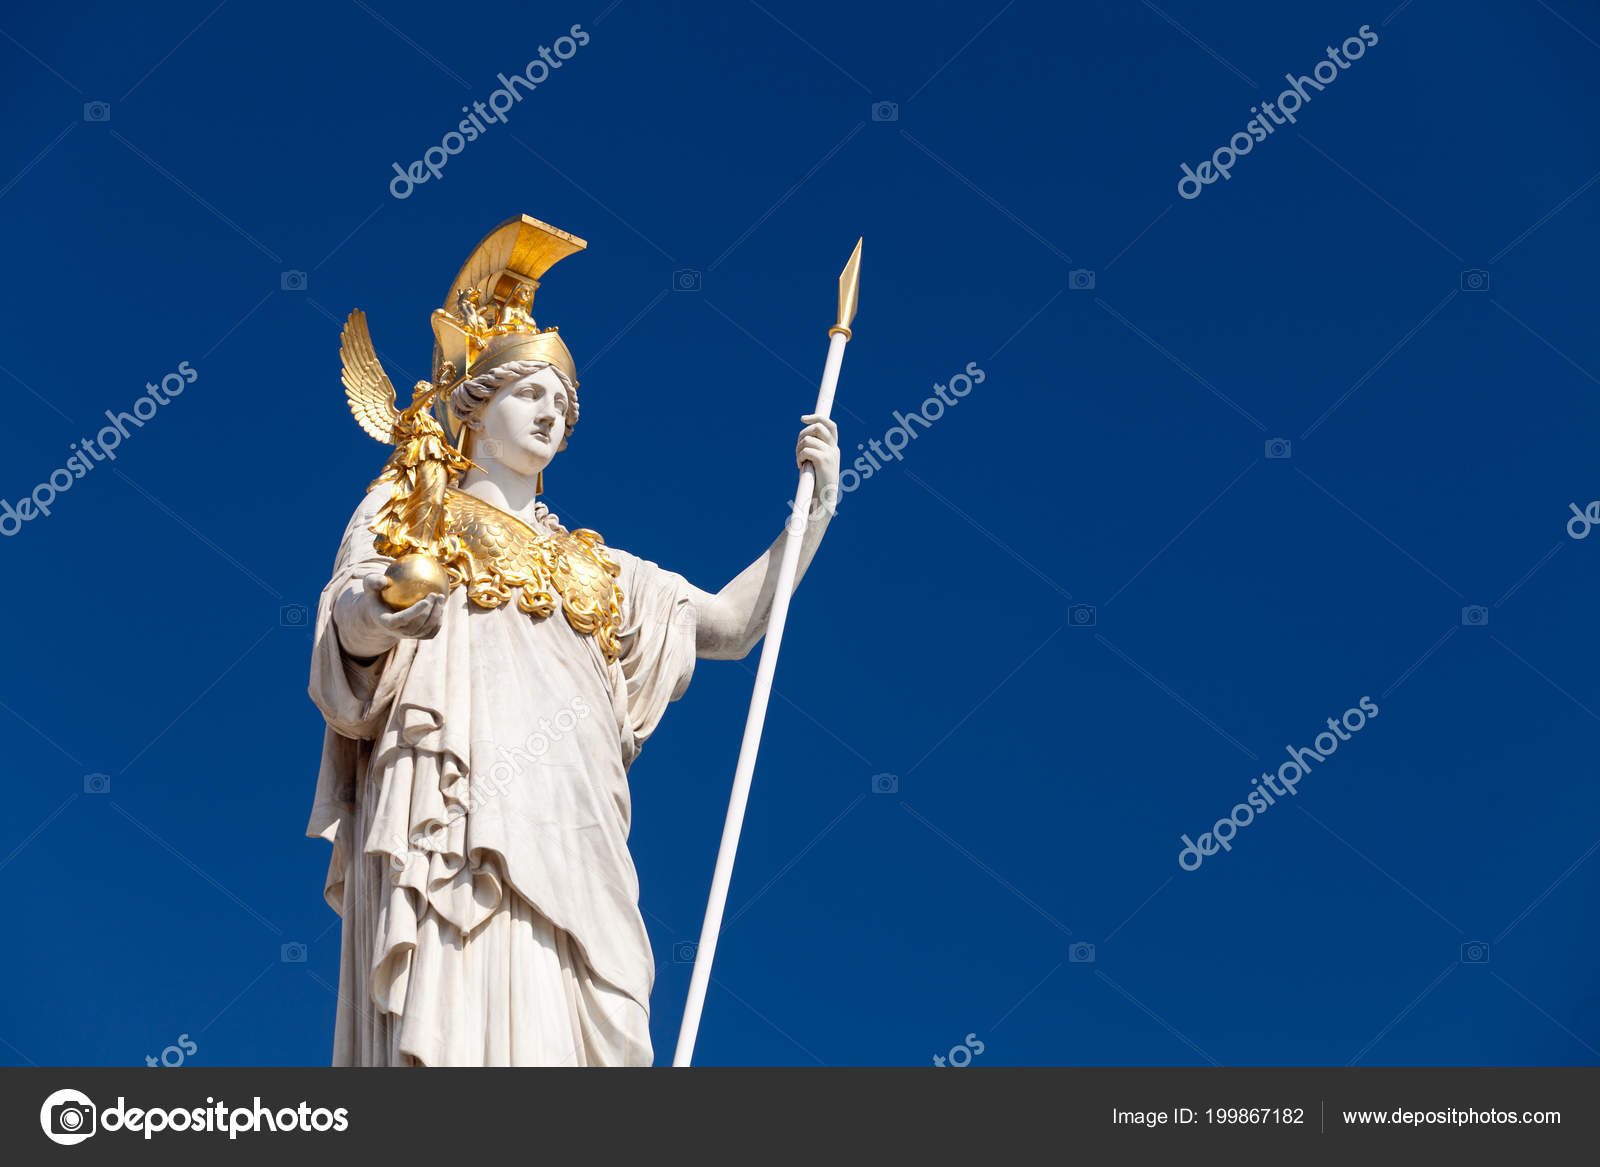 Athena Goddess Greek Mythology Symbol Law Justice Stock Photo